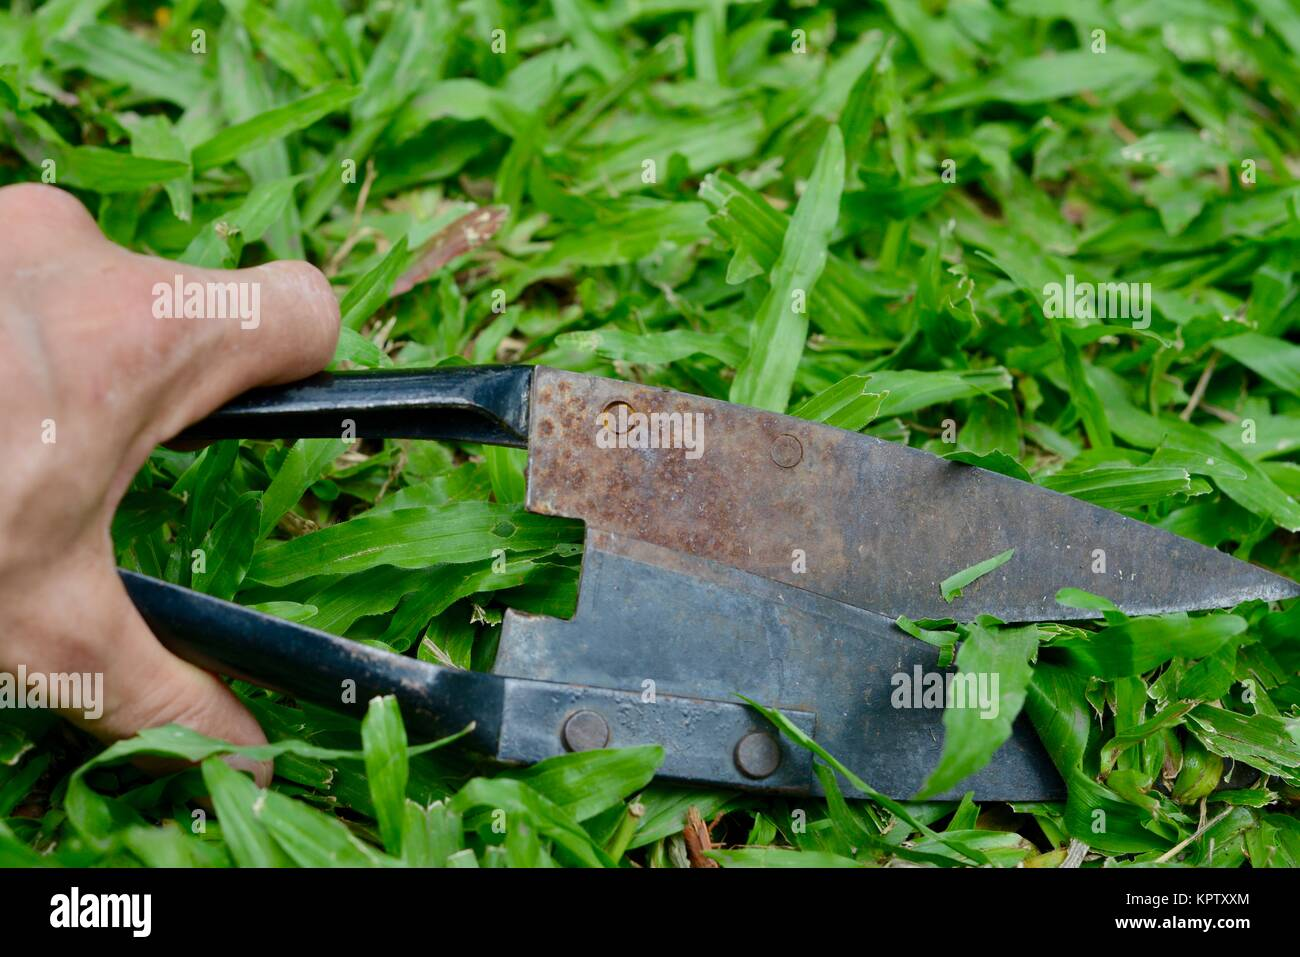 Clipping grass with straight edge hand shears, Townsville, Queensland, Australia - Stock Image